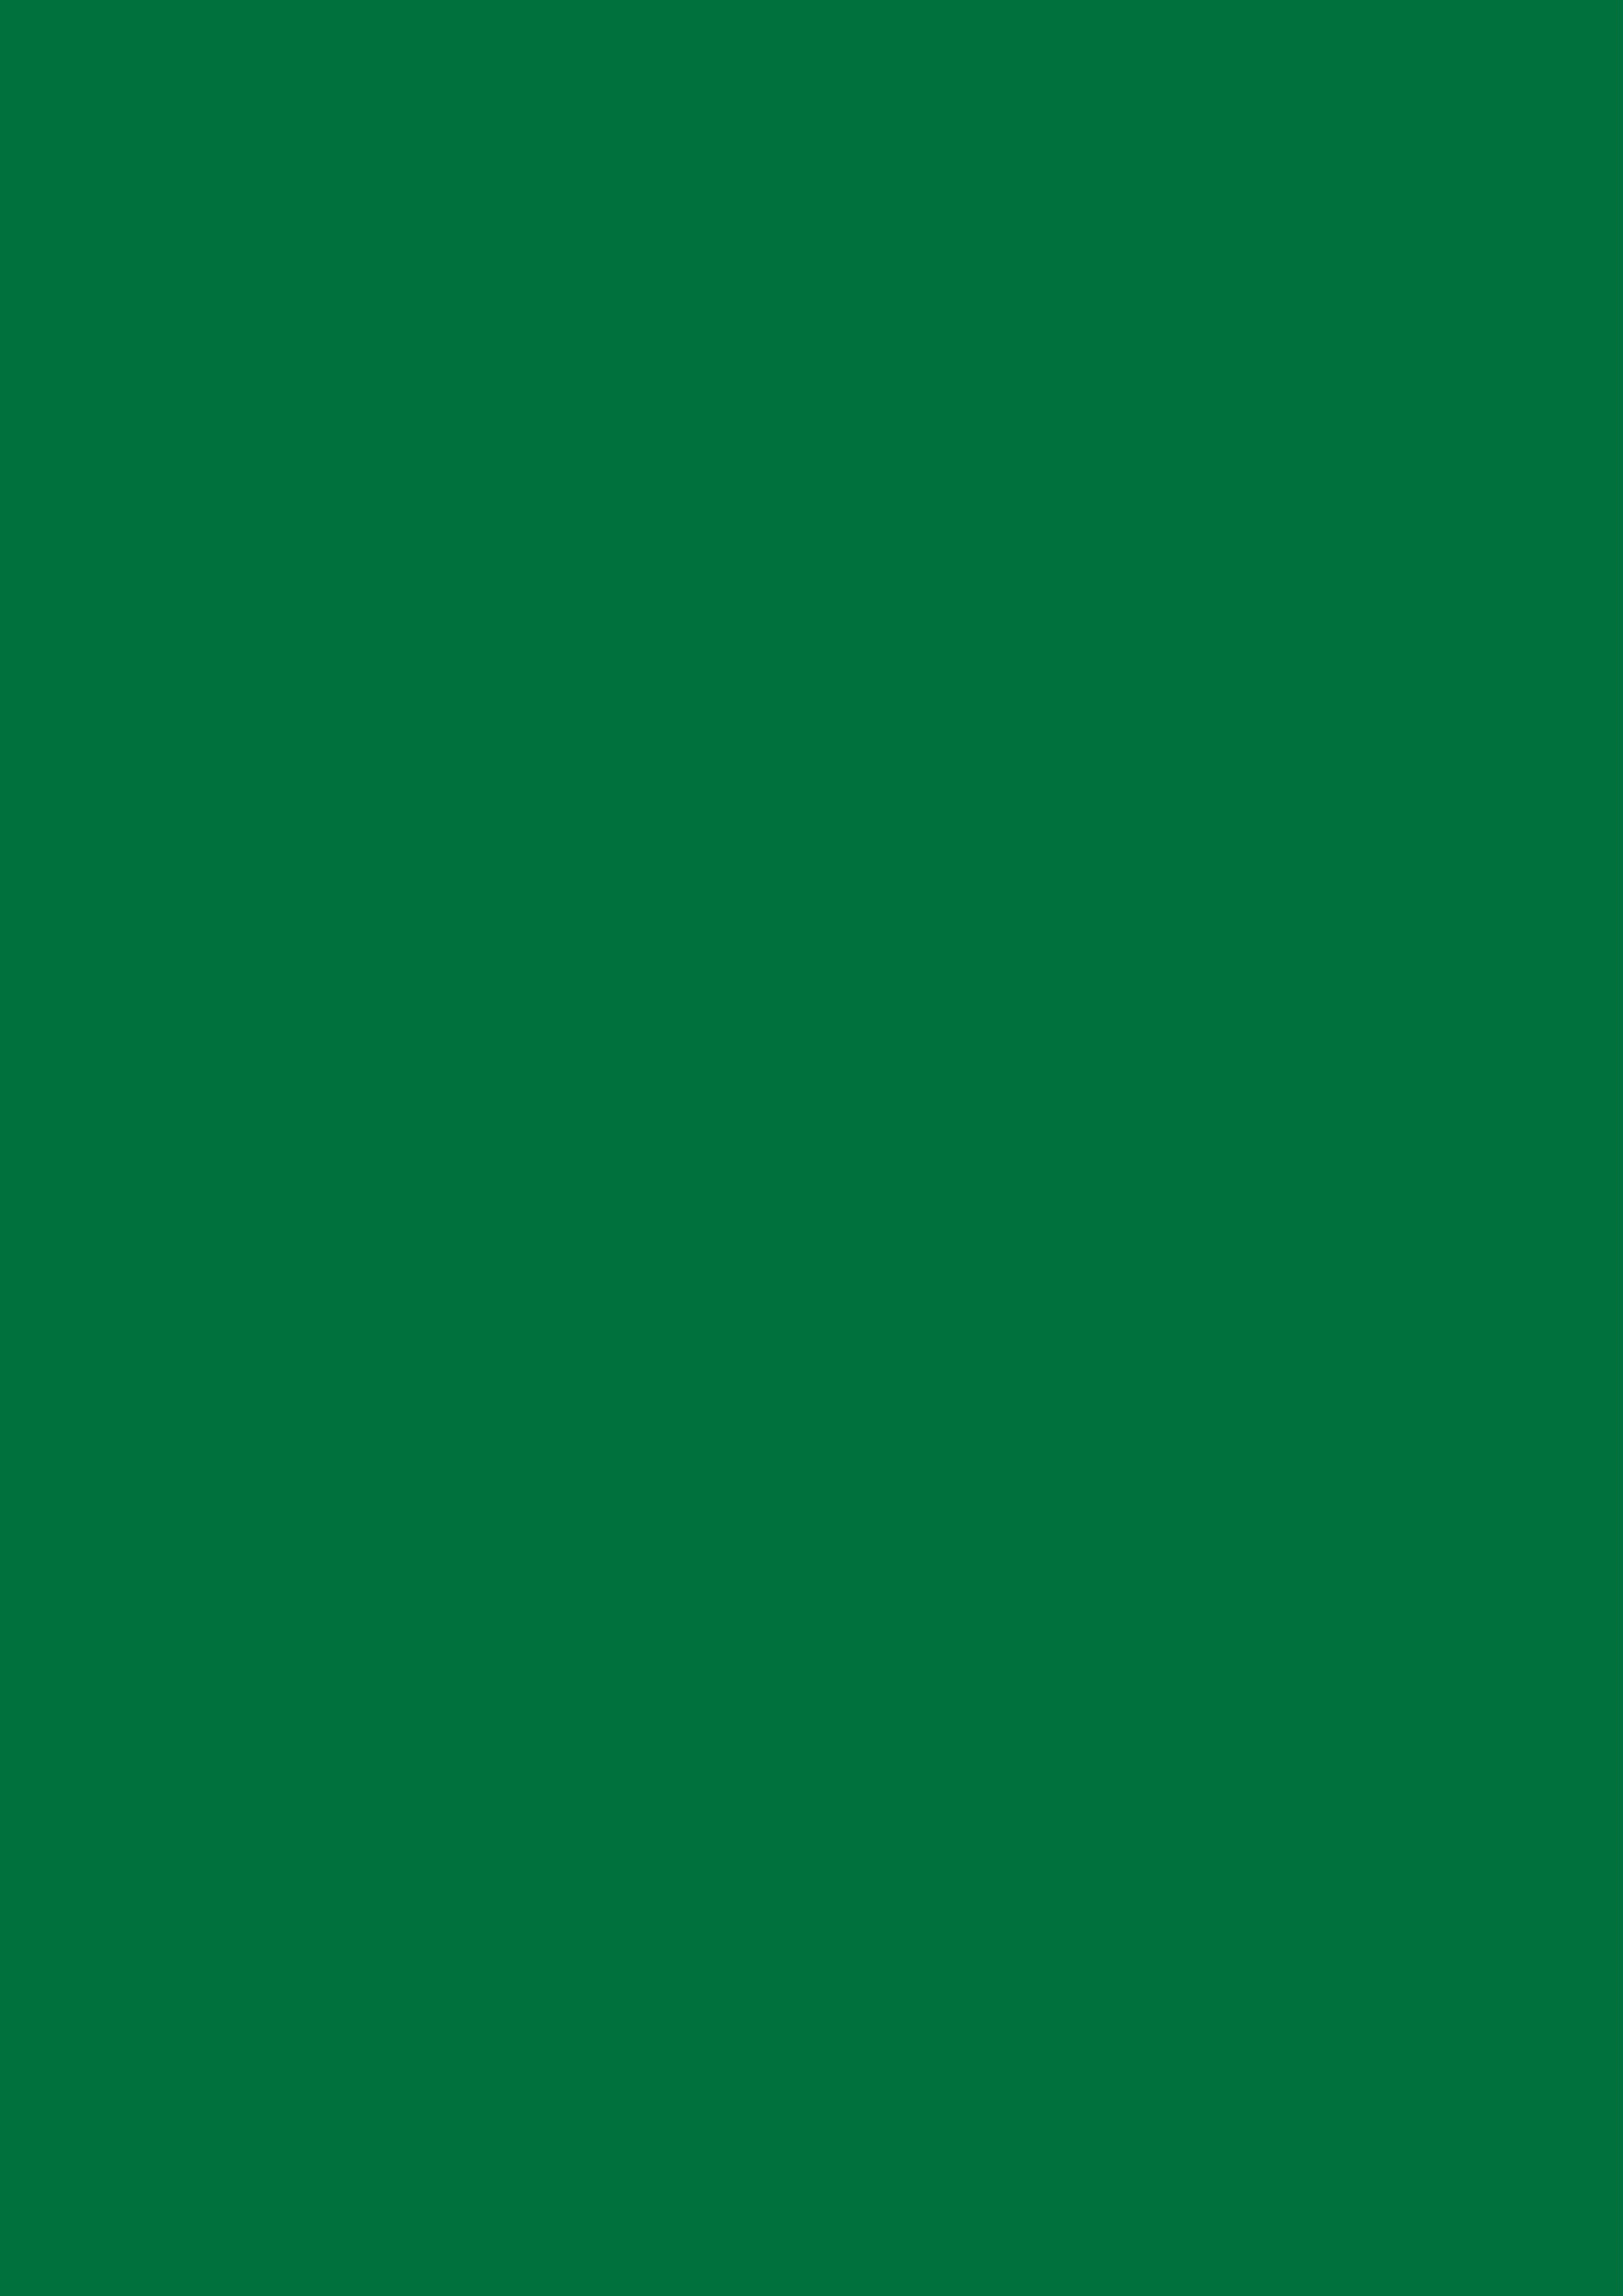 2480x3508 Dartmouth Green Solid Color Background